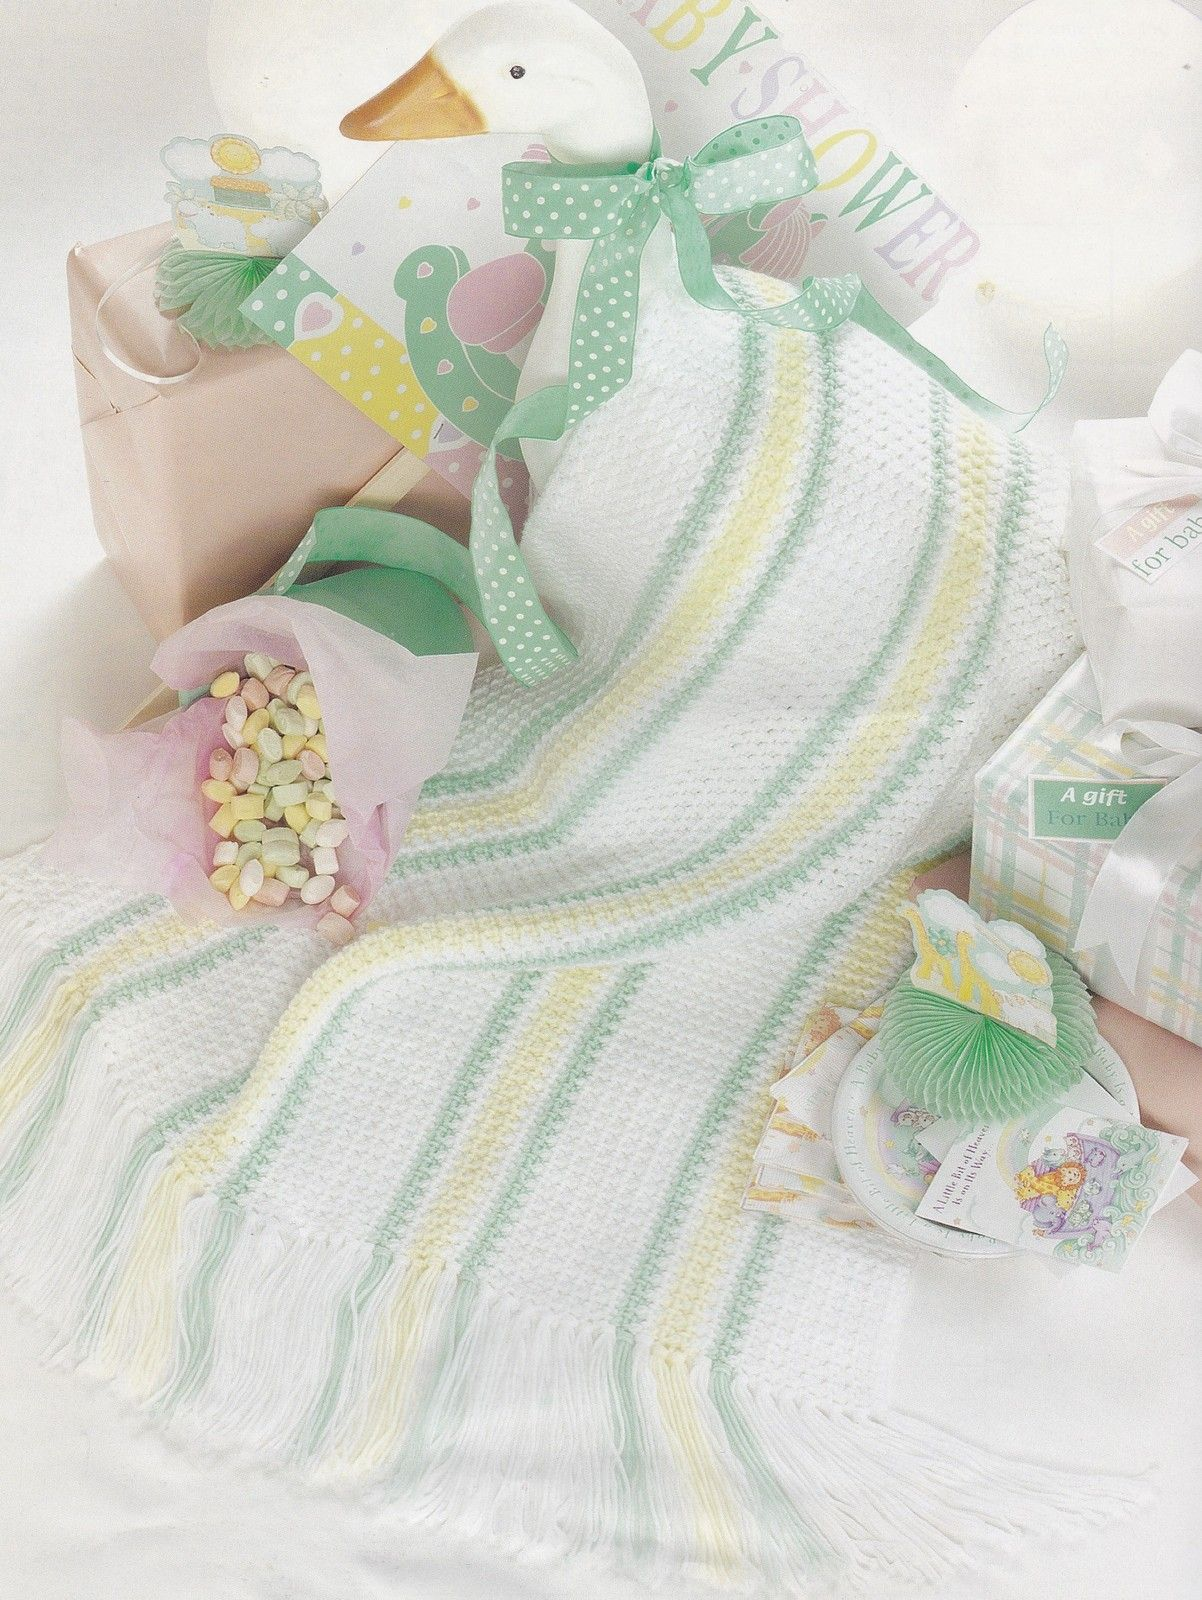 Snuggle-Up Baby Afghans, Leisure Arts Crochet Pattern Booklet 3205 - Dolls & Toys